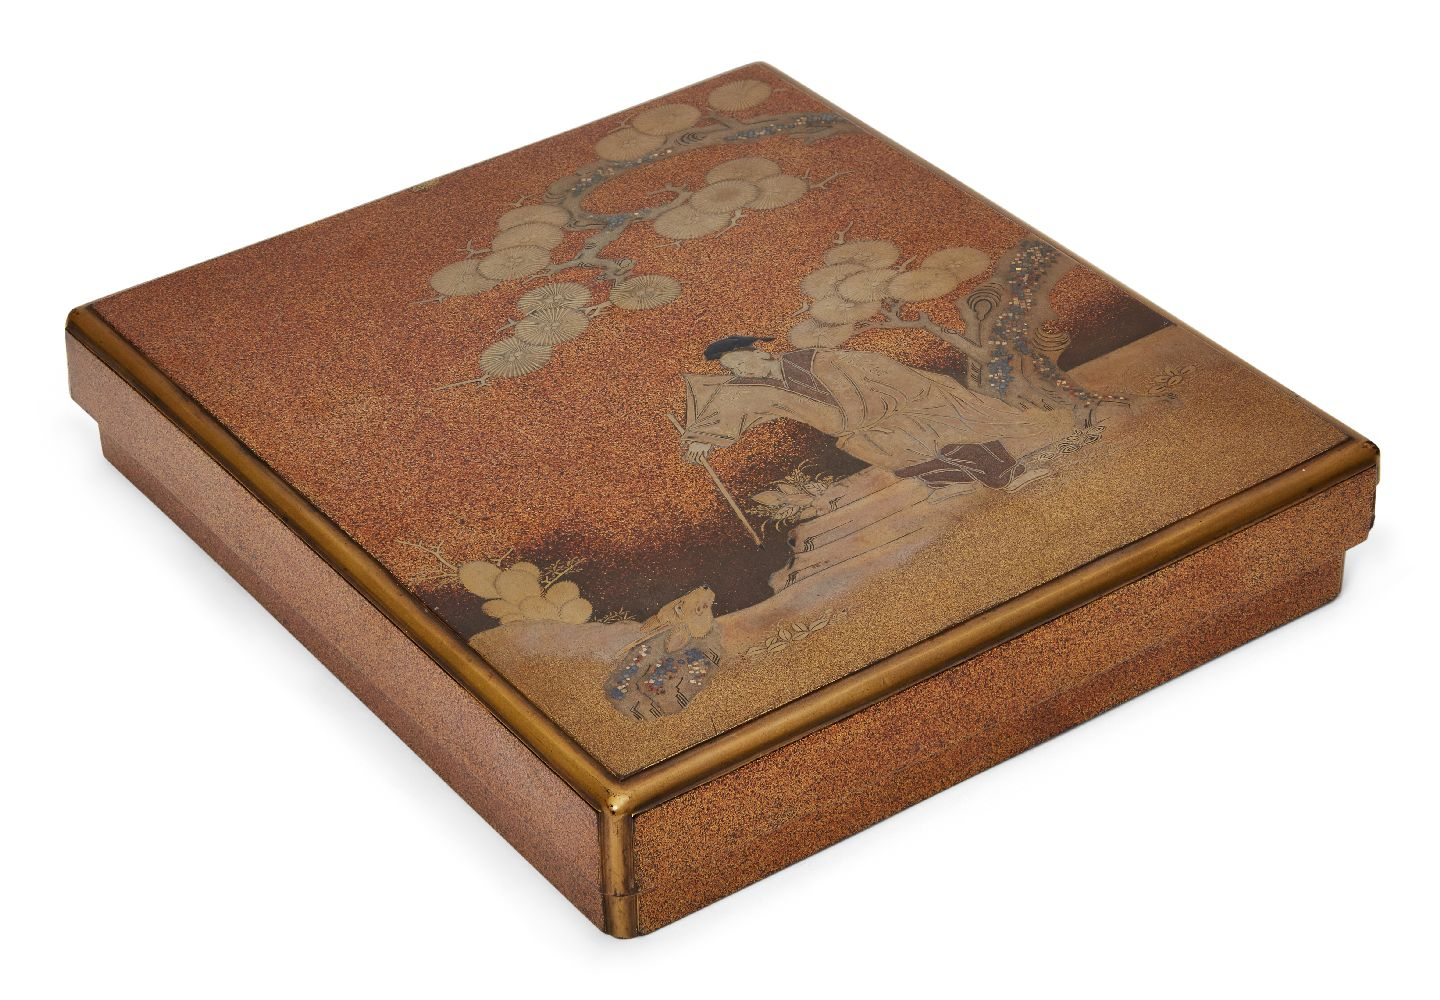 A Japanese suzuribako, 18th century, decorated with maki-e courtier confronting a mythical